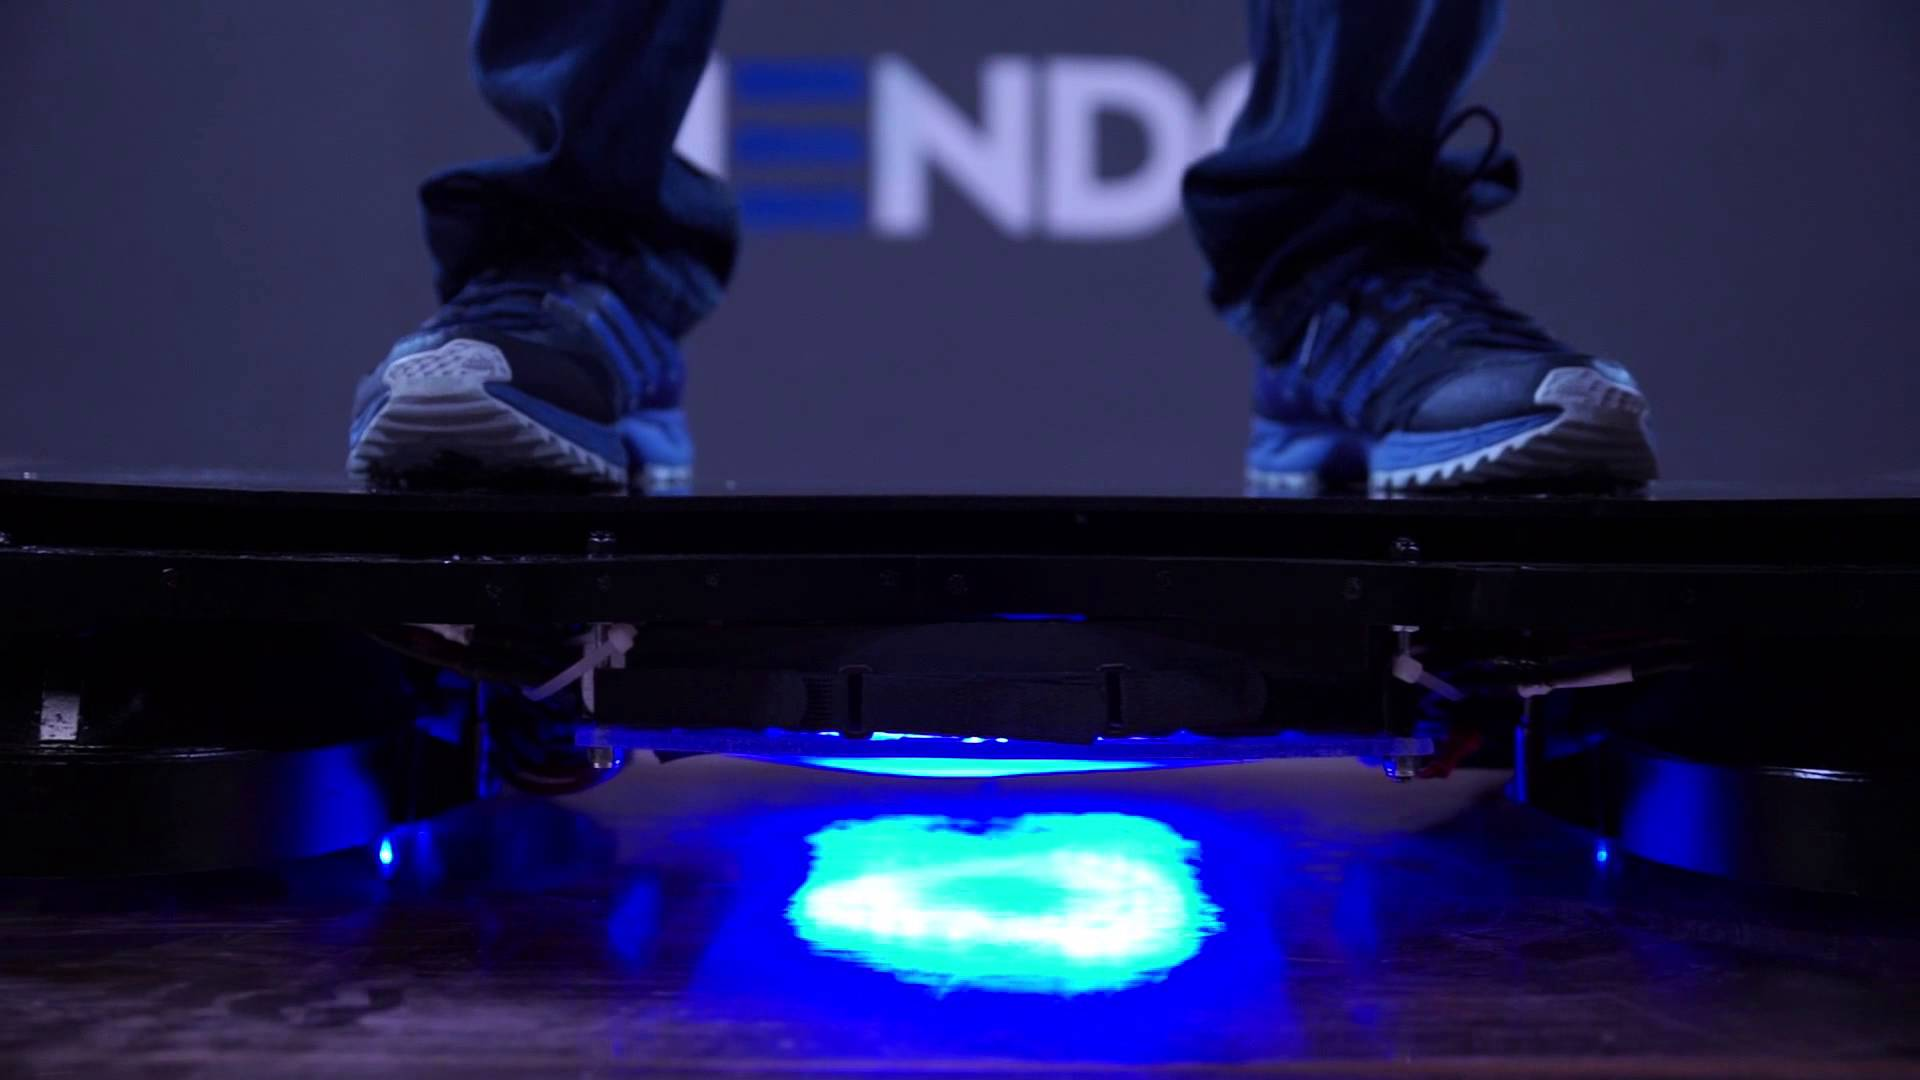 Video: Tomorrow Daily 072: Real-world Mario Karts, a working hoverboard and more